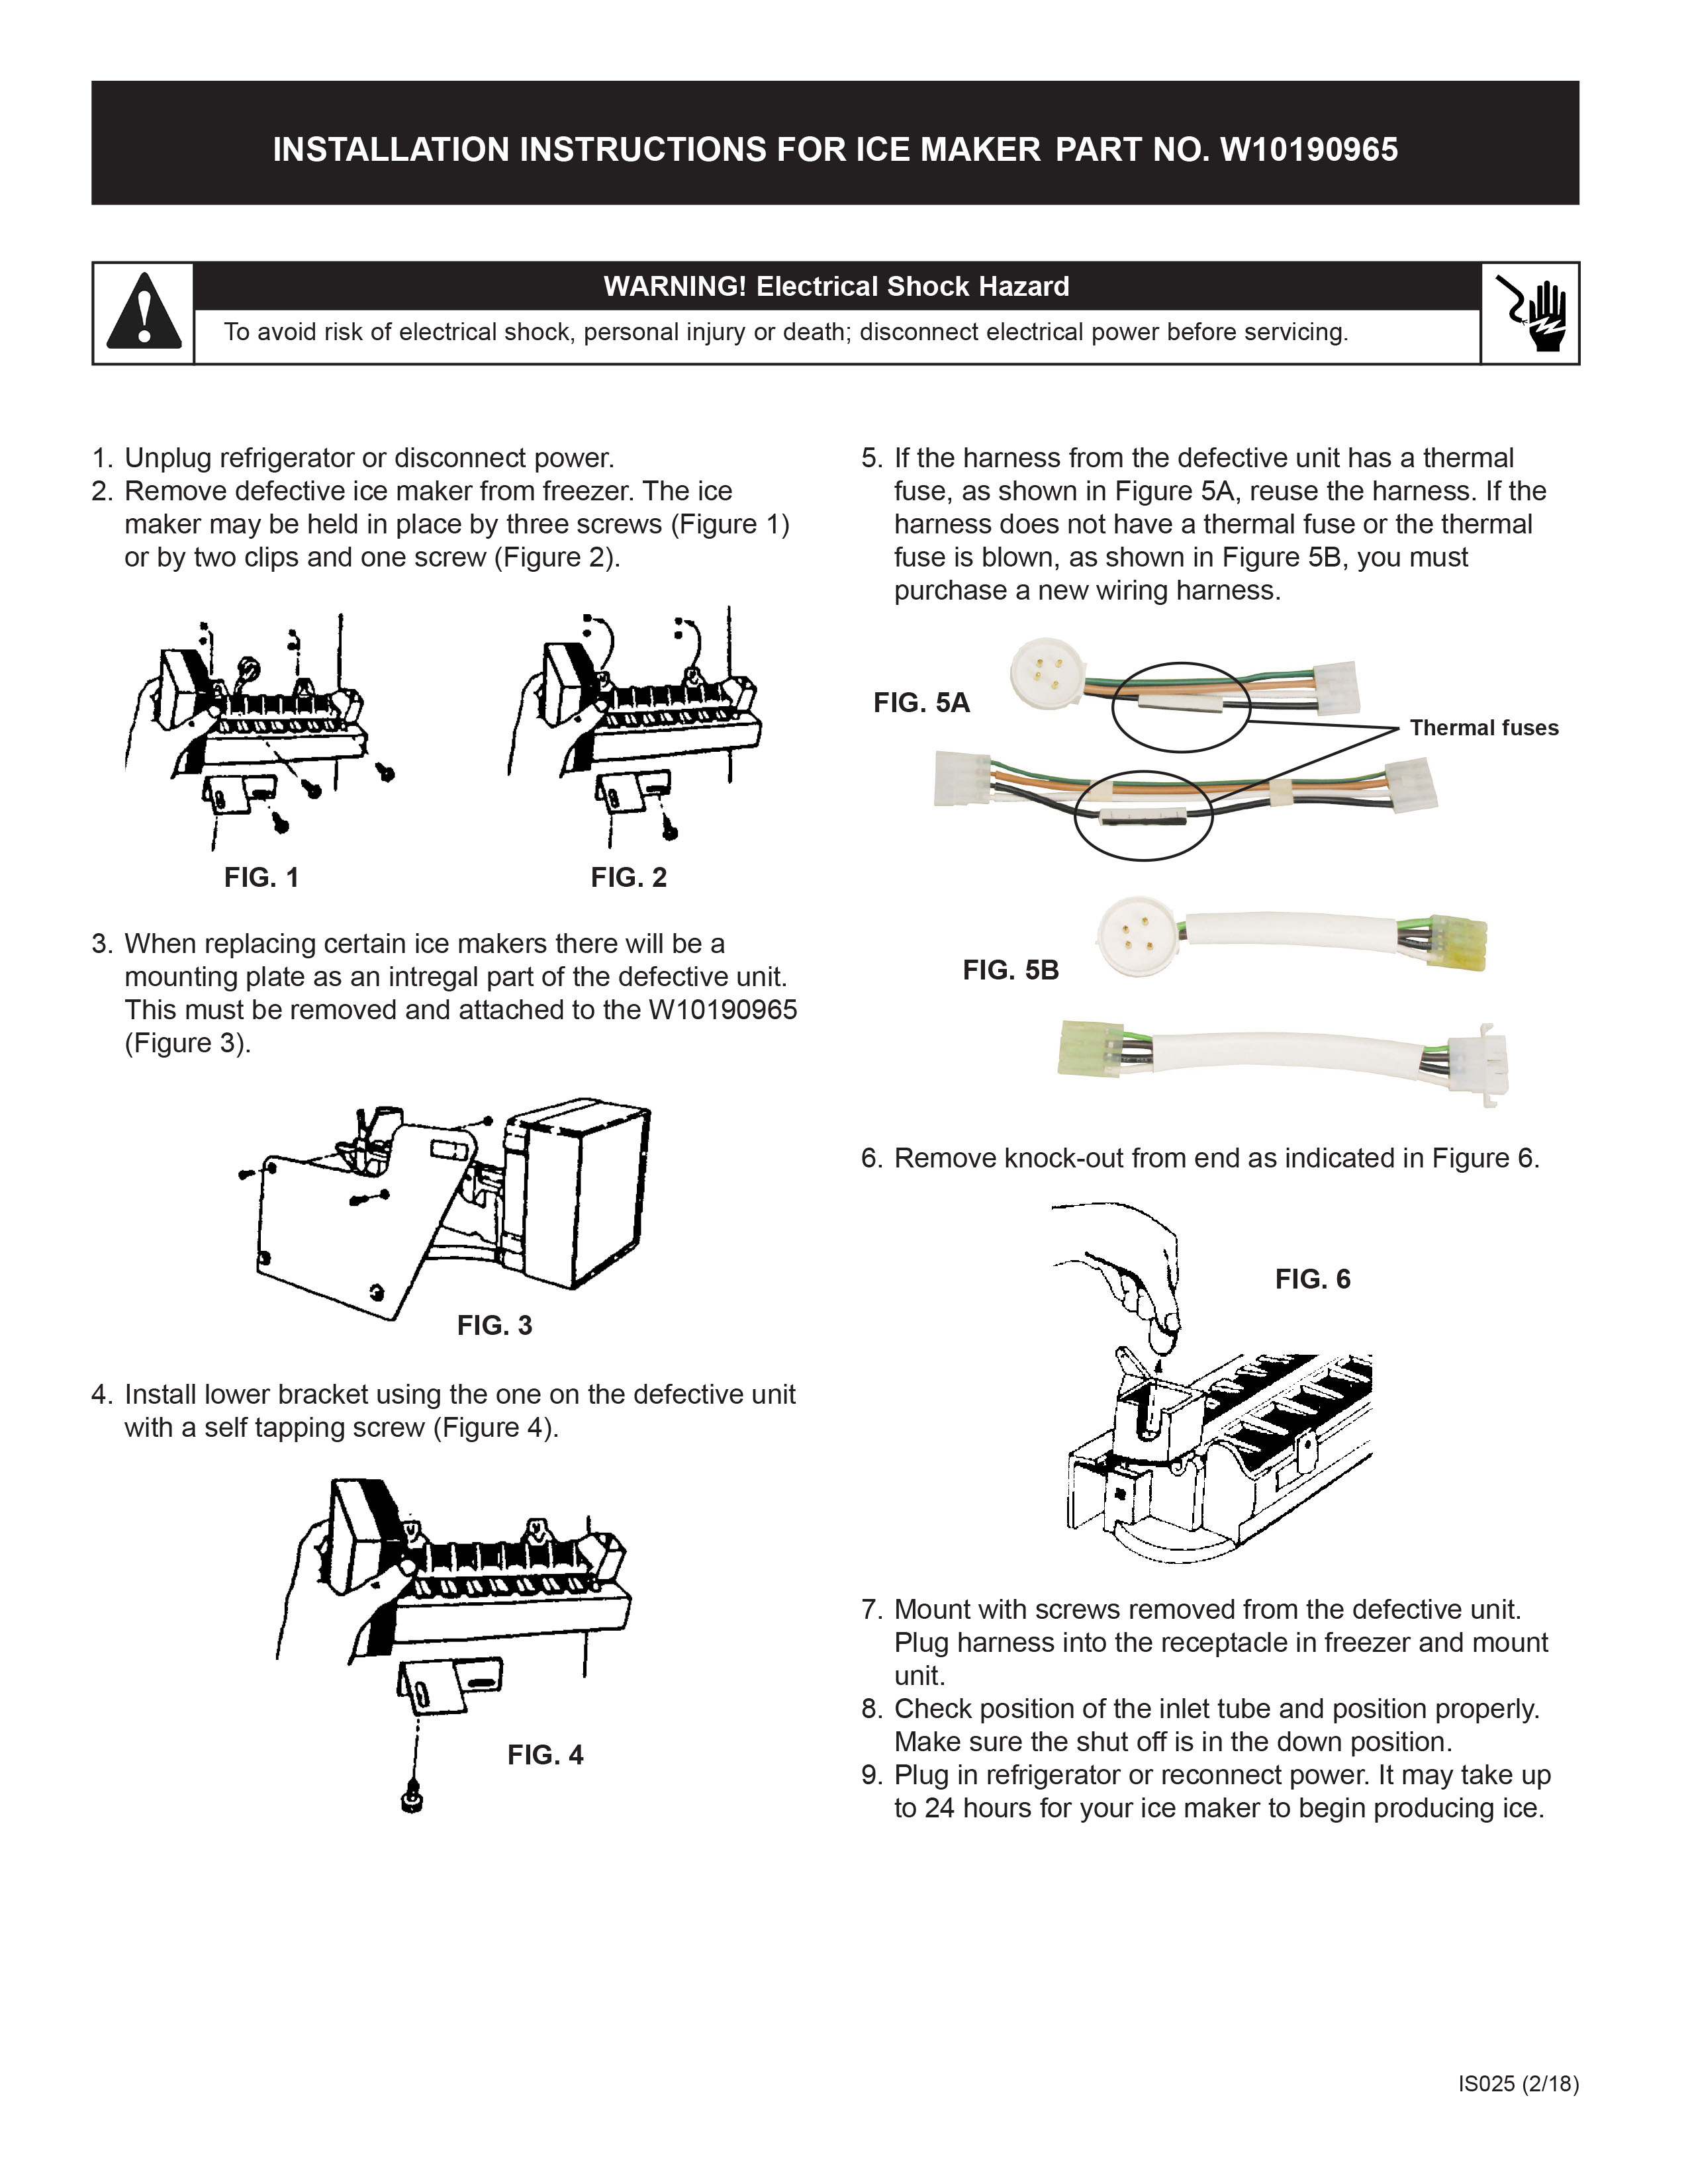 Installation Instructions - Replacement Ice Maker for SNAP Supply, LLC's  product W10190965